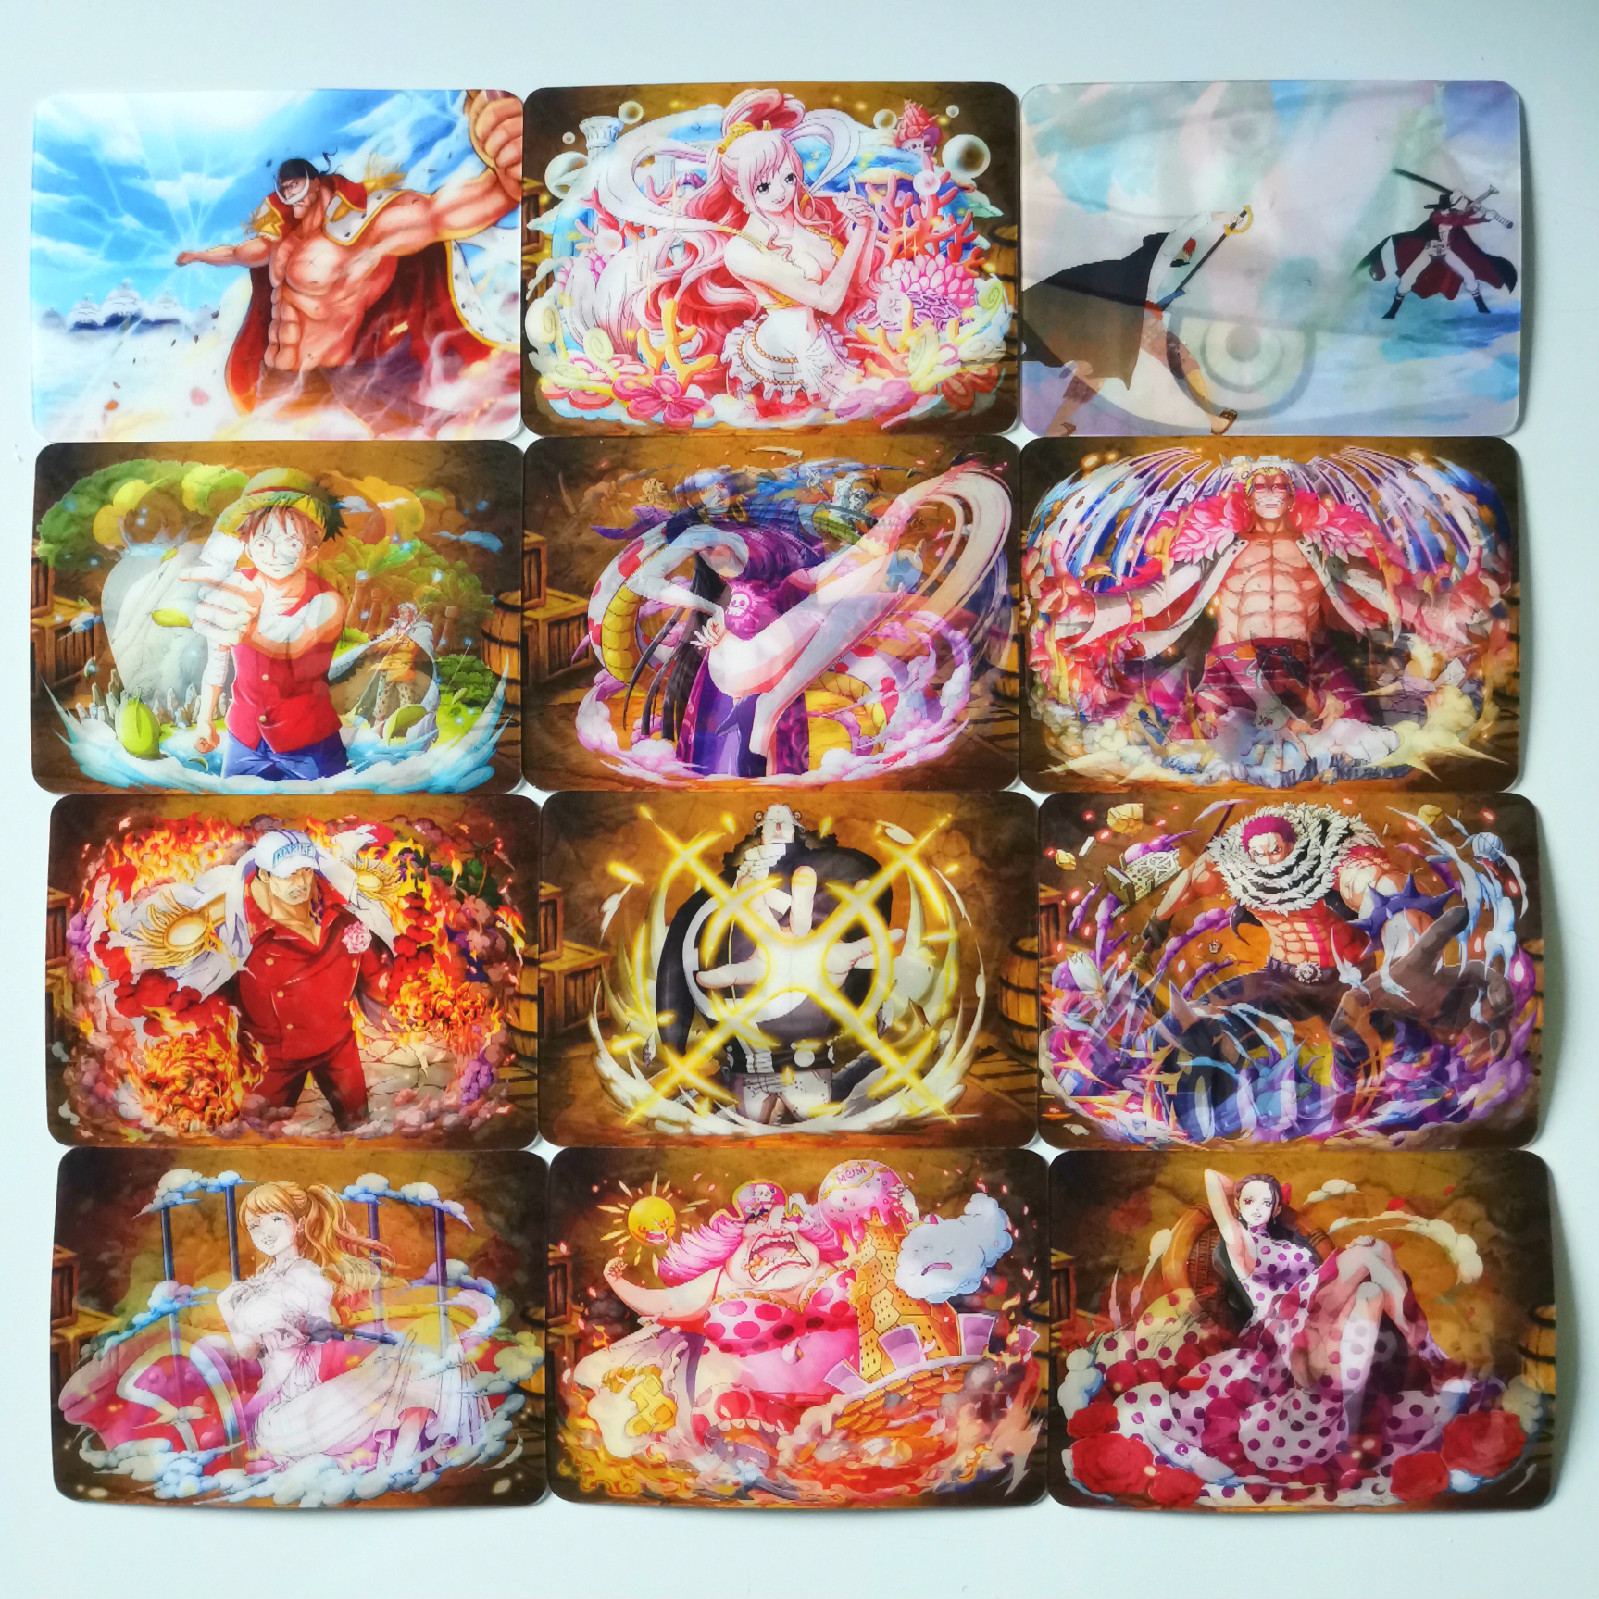 69pcs/set ONE PIECE Change Card Toys Hobbies Hobby Collectibles Game Collection Anime Cards